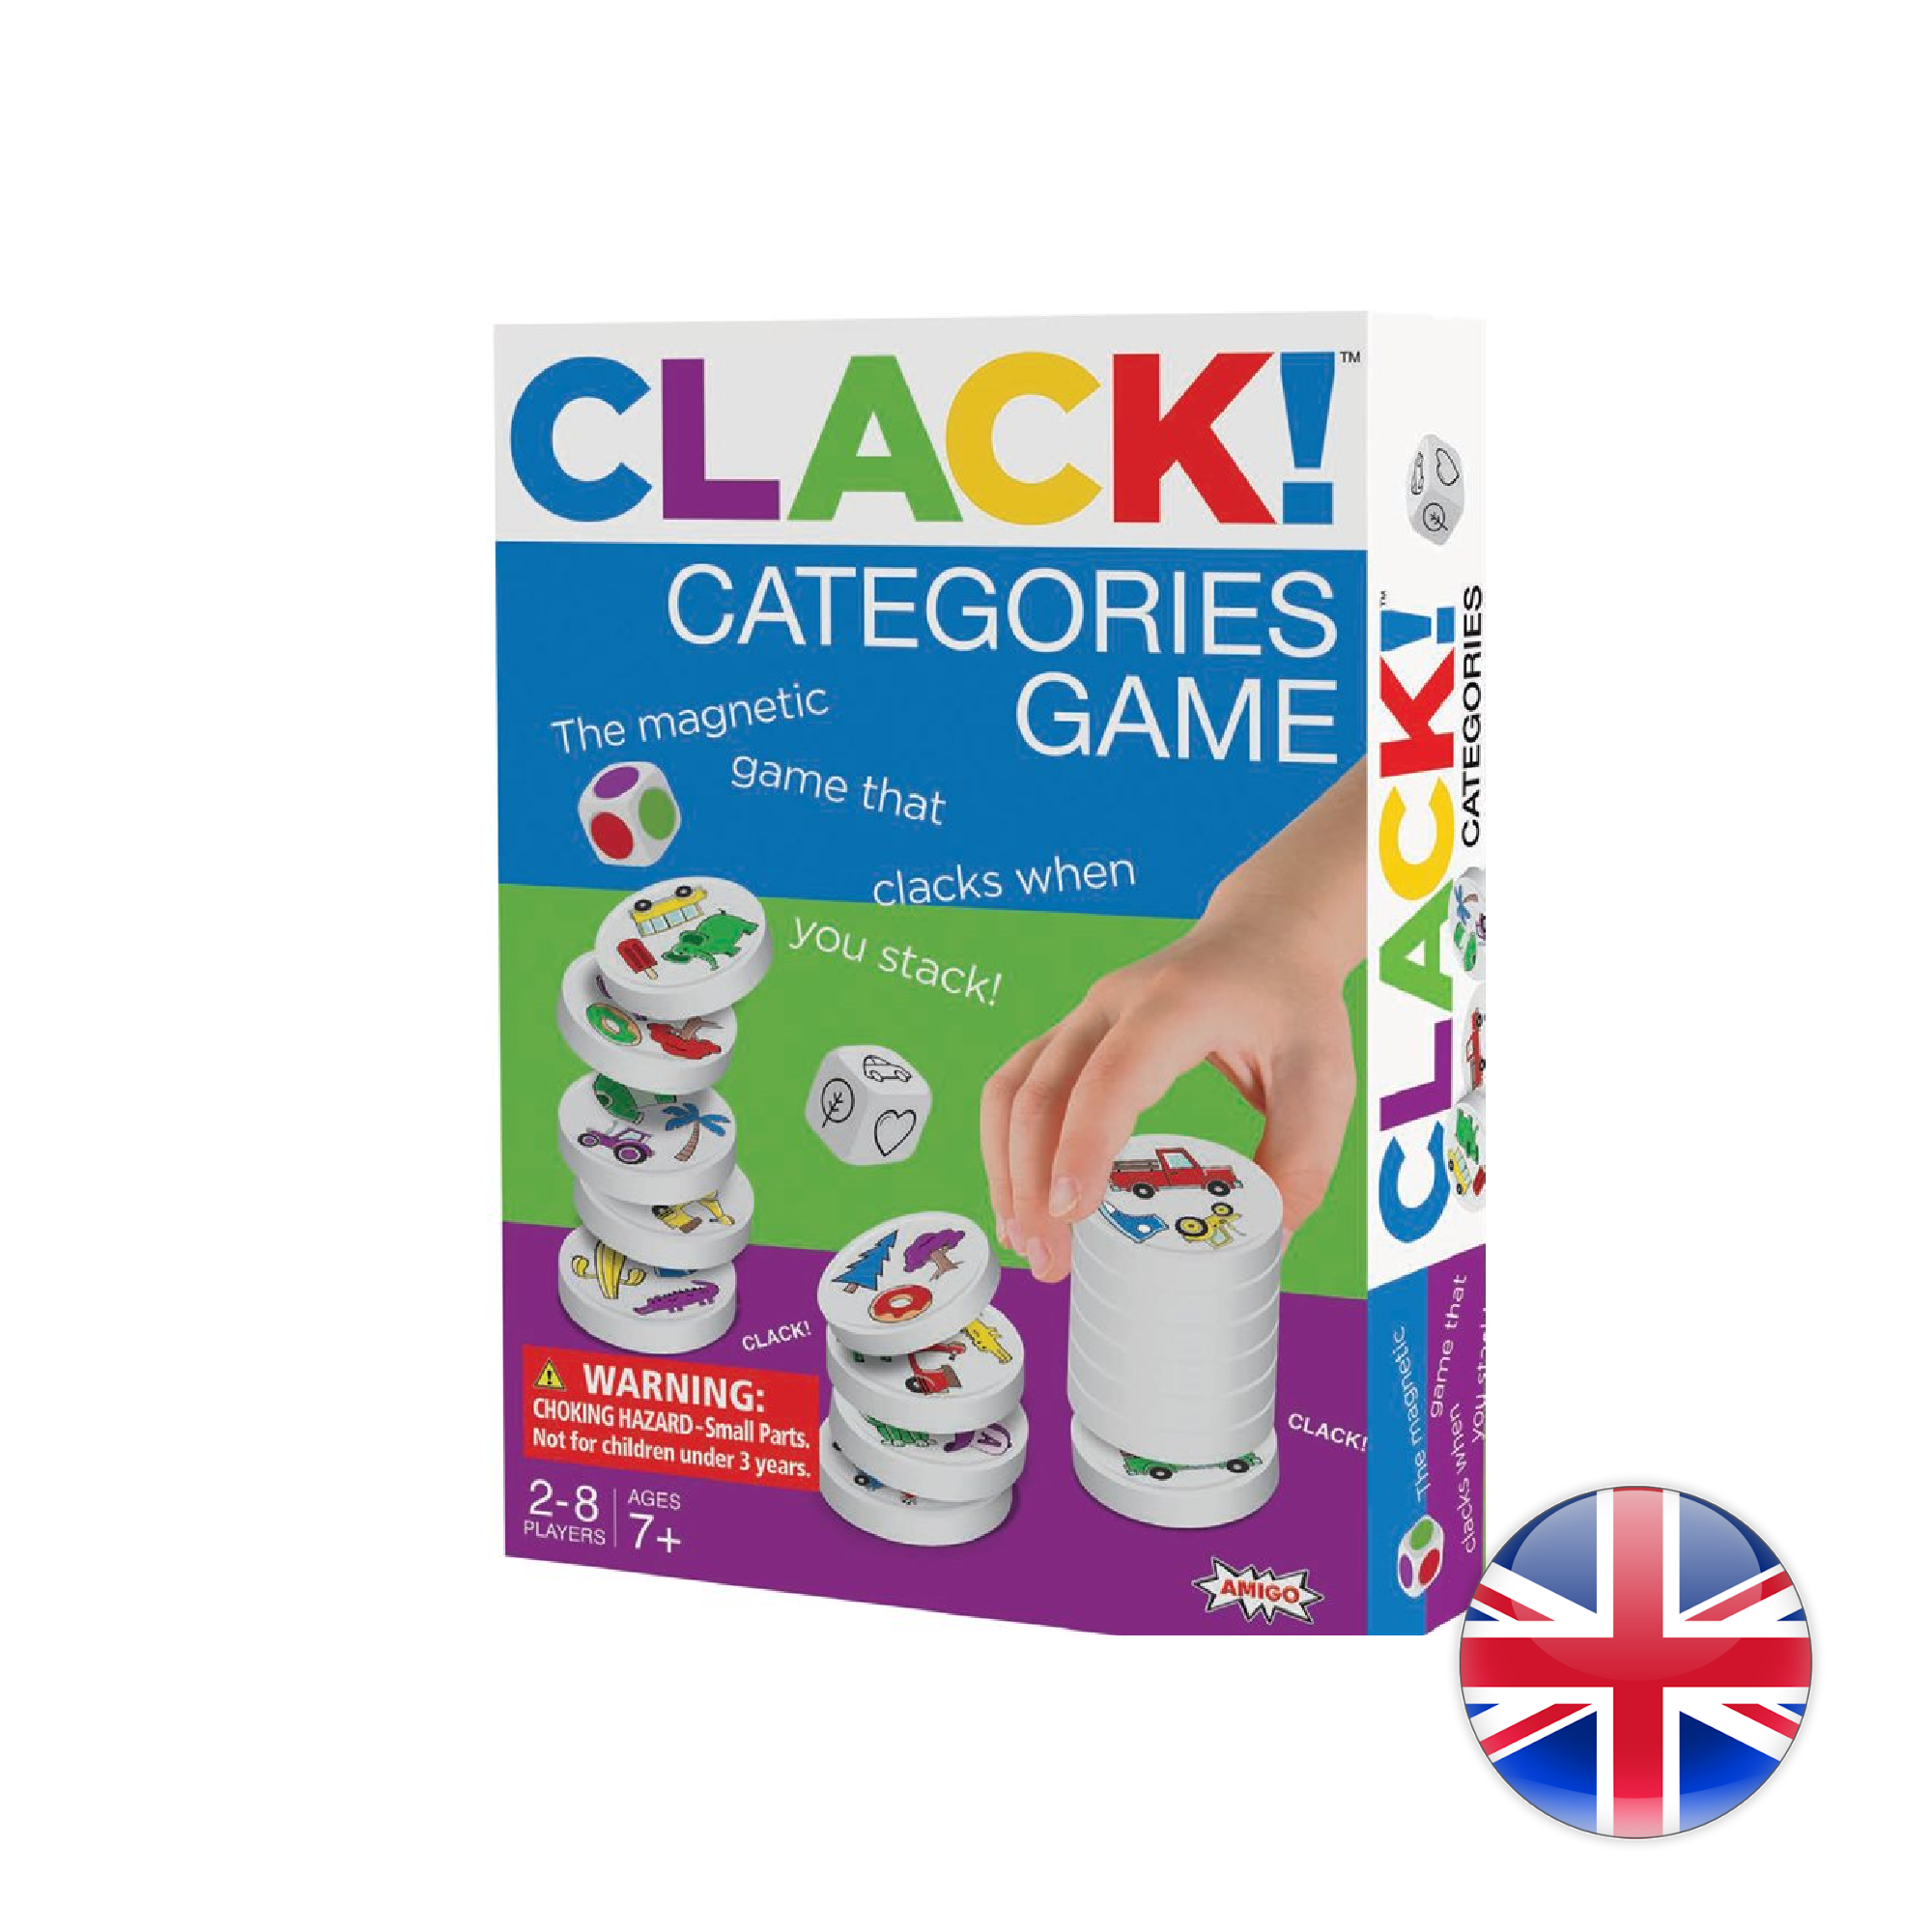 Amigo Clack! Categories